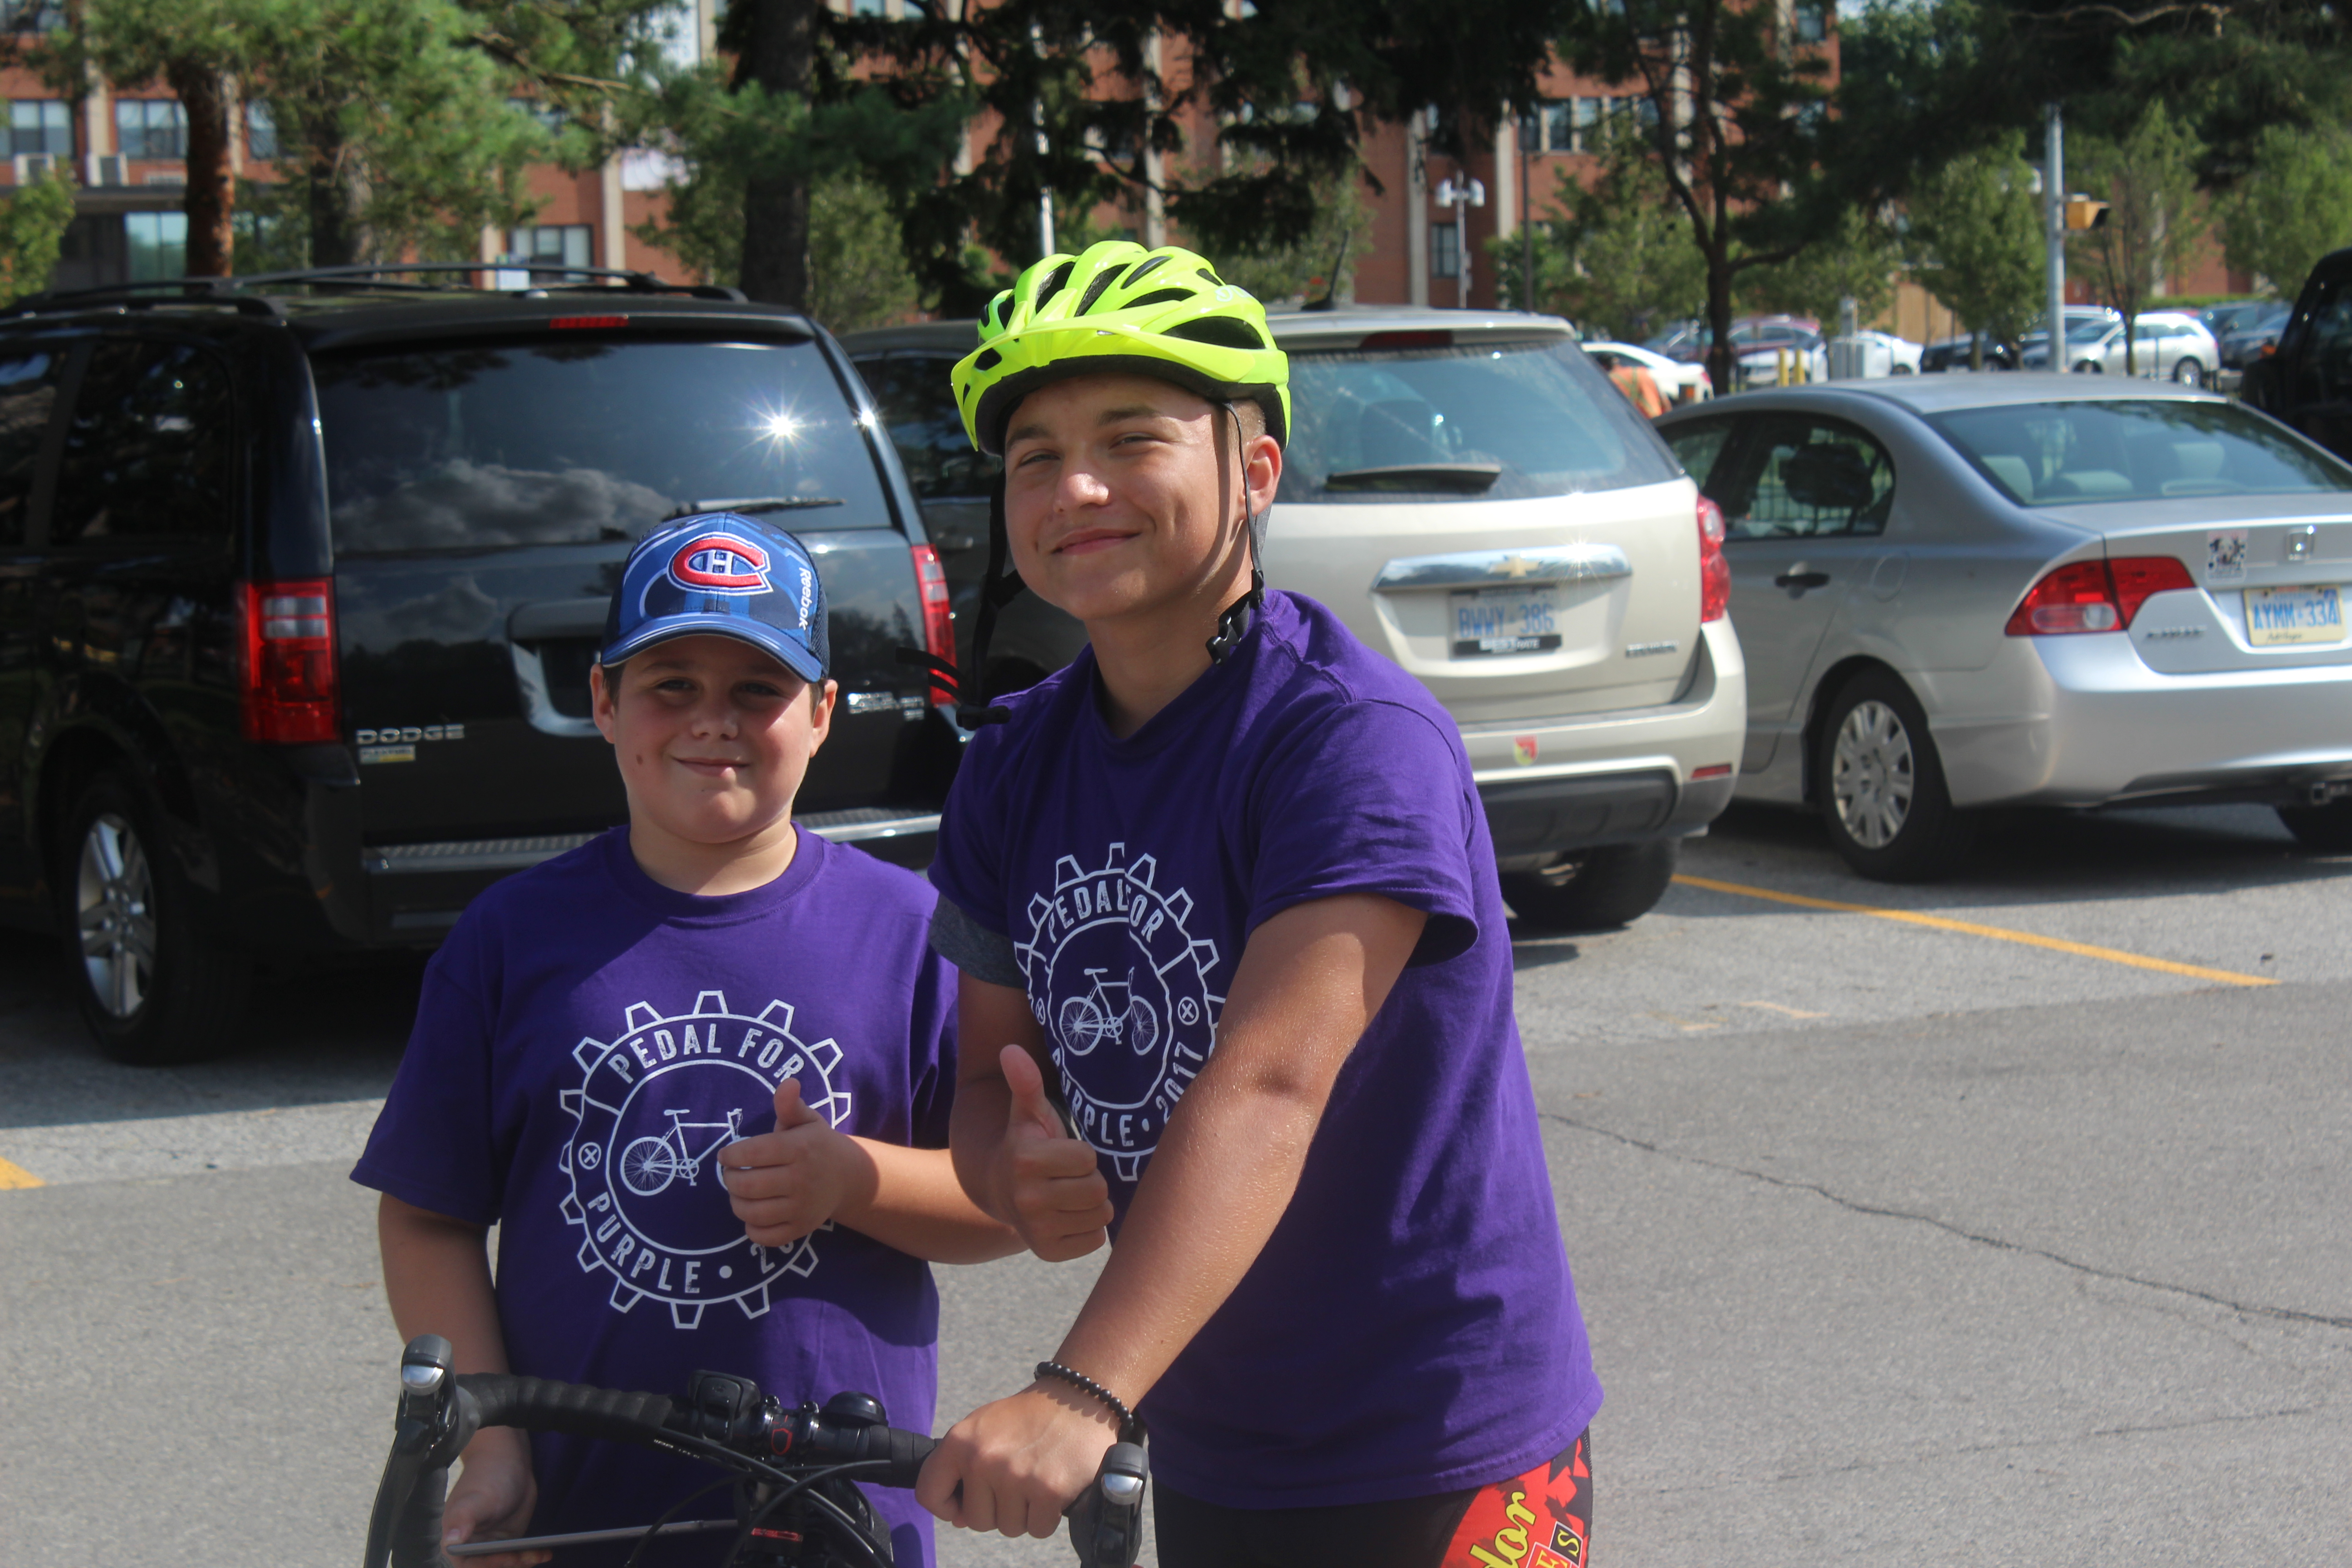 Chatham Teen Pedals For Purple